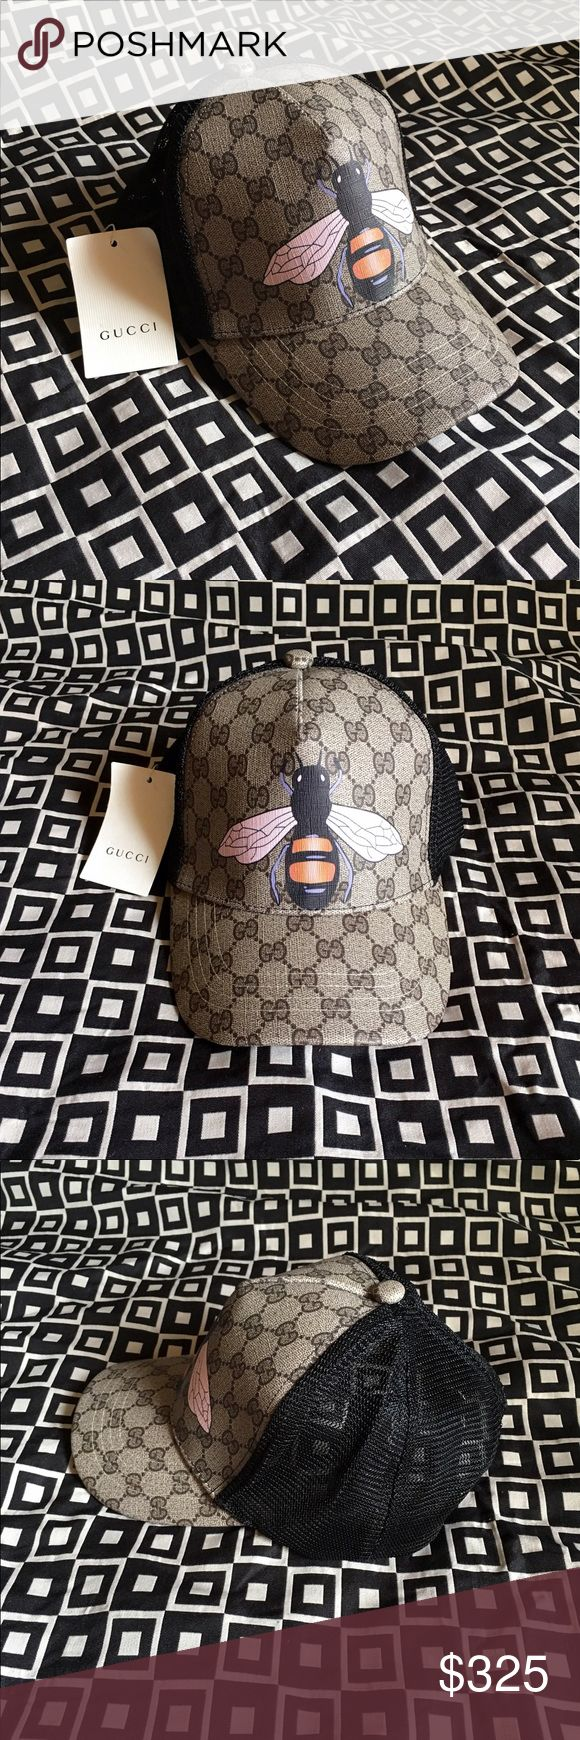 Gucci GG Bee Print Hat!!! Gucci GG Bee Print Baseball Hat!!!  Brand New!!!  Unisex...For Man Or Woman!!!  Adjustable Strap!!!  Comes Gucci Gift Box!!!  Great Gift Idea!!!  Last Available!!!  Check My Listings For Other Great Items!!!             Ignore: Gucci gg monogram casual dress men's women's guccissma leather monogram web tiger bee embossed panther wool cable knit blooms supreme print angry cat ufo dragon studded snake double g tigers fitted SnapBack cap Gucci Accessories Hats